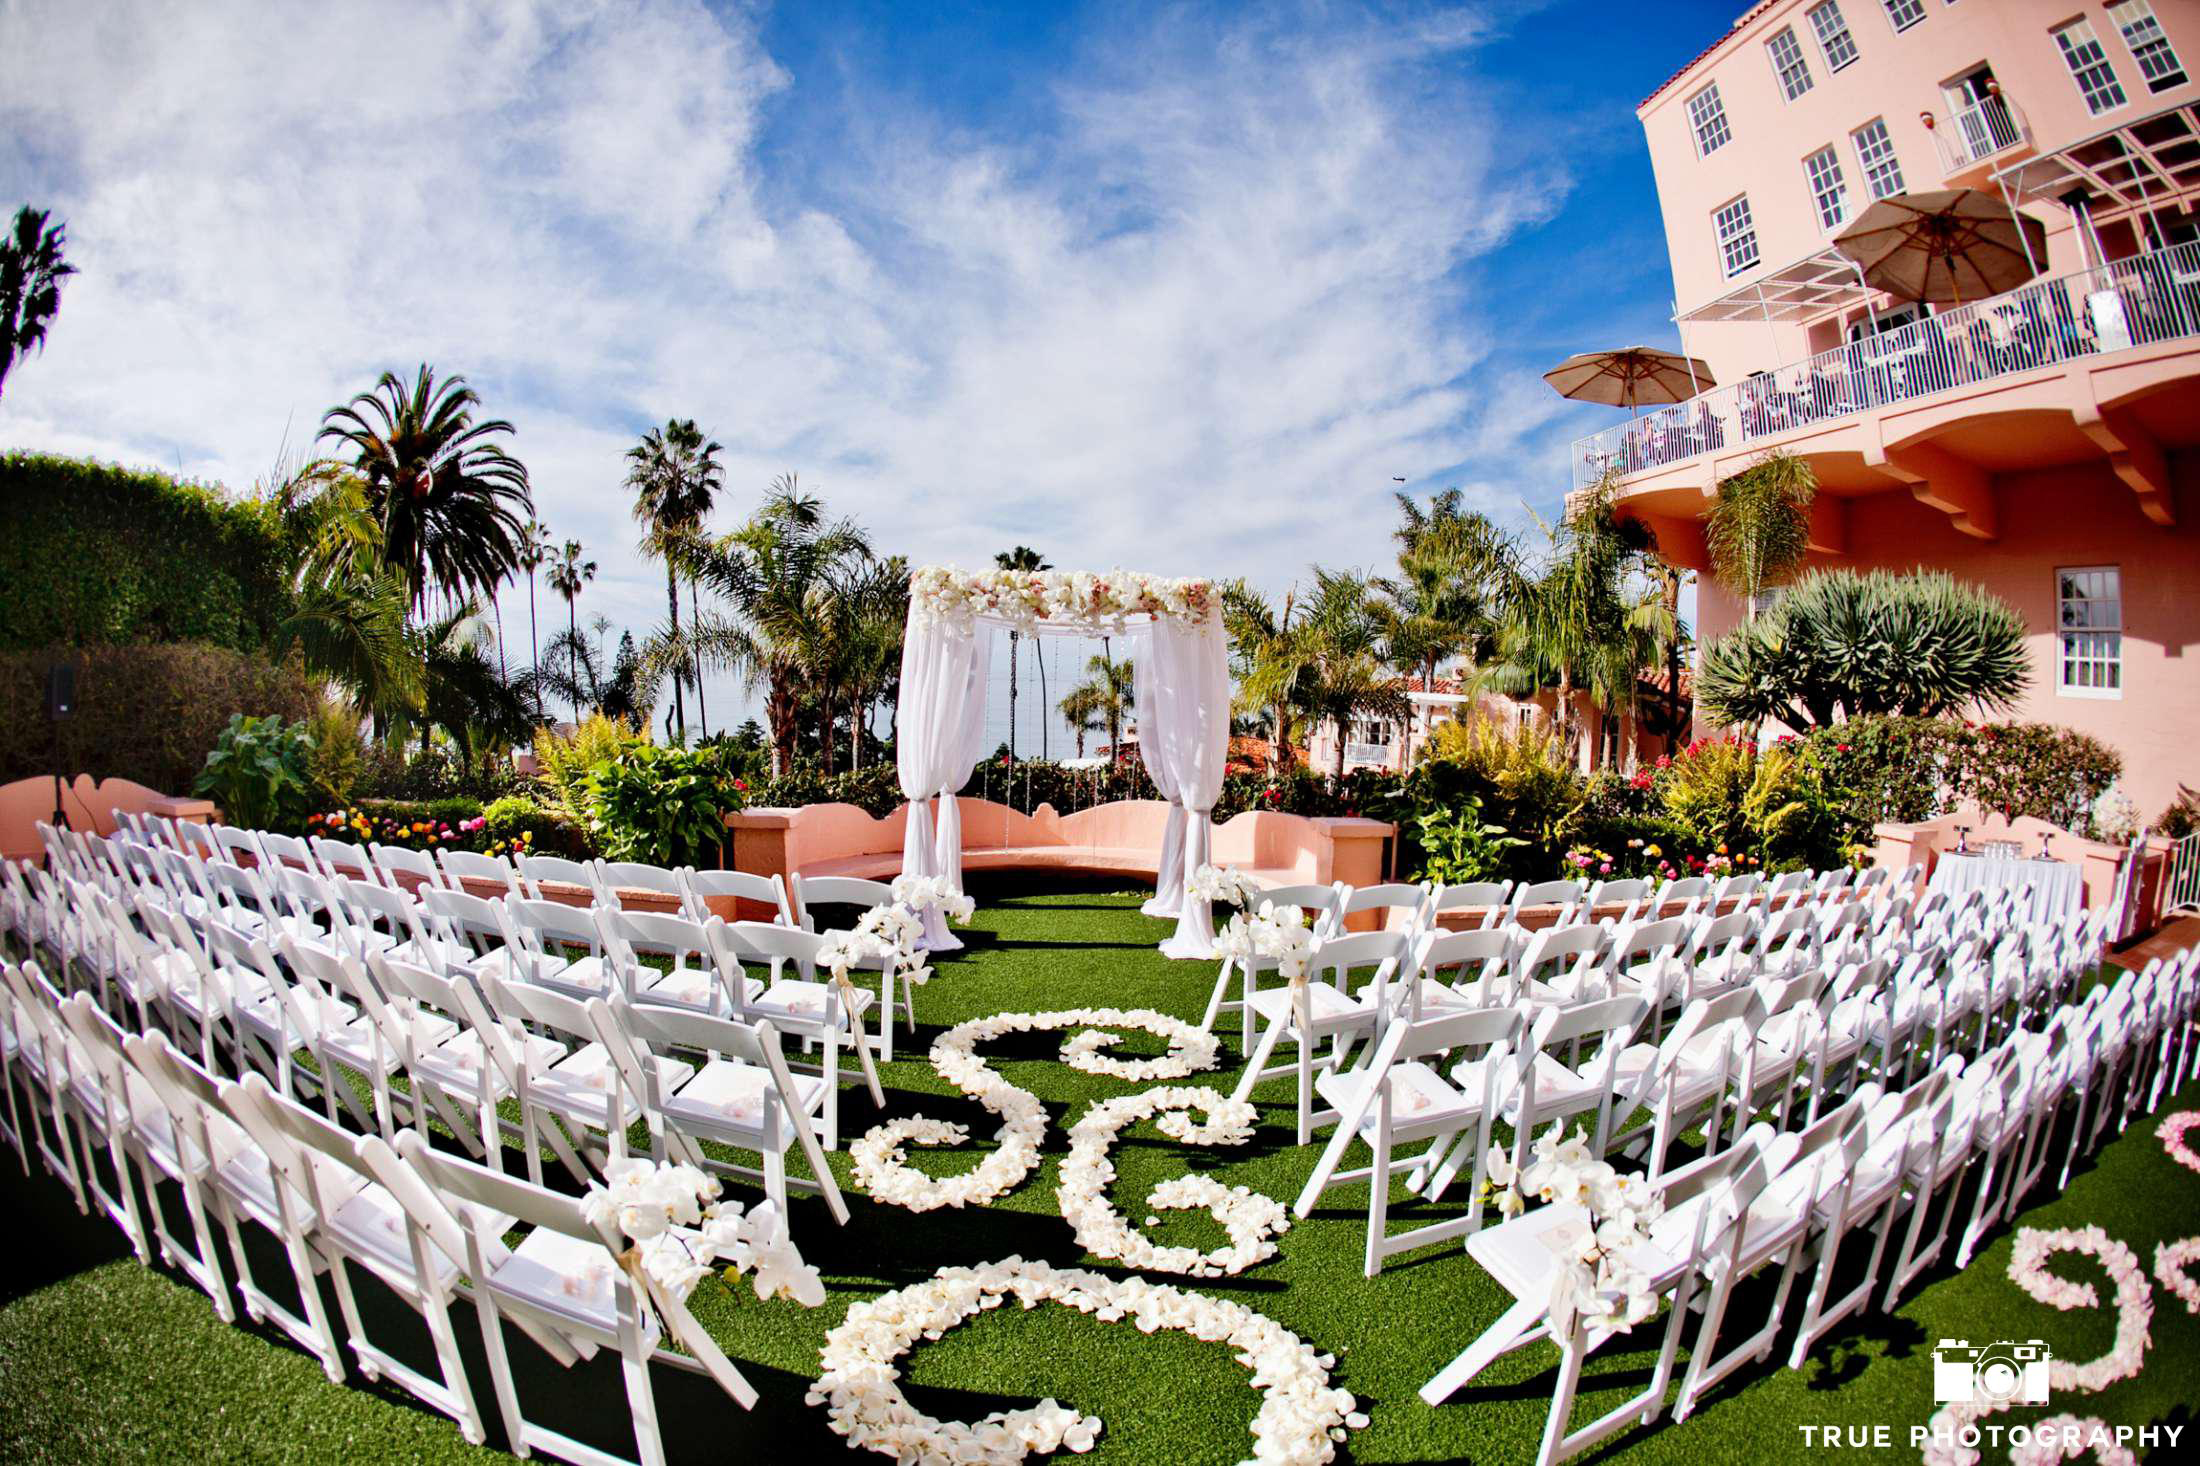 Wedding Venues San Diego.7 Flower And Nature Filled San Diego Wedding Venues That Are Perfect